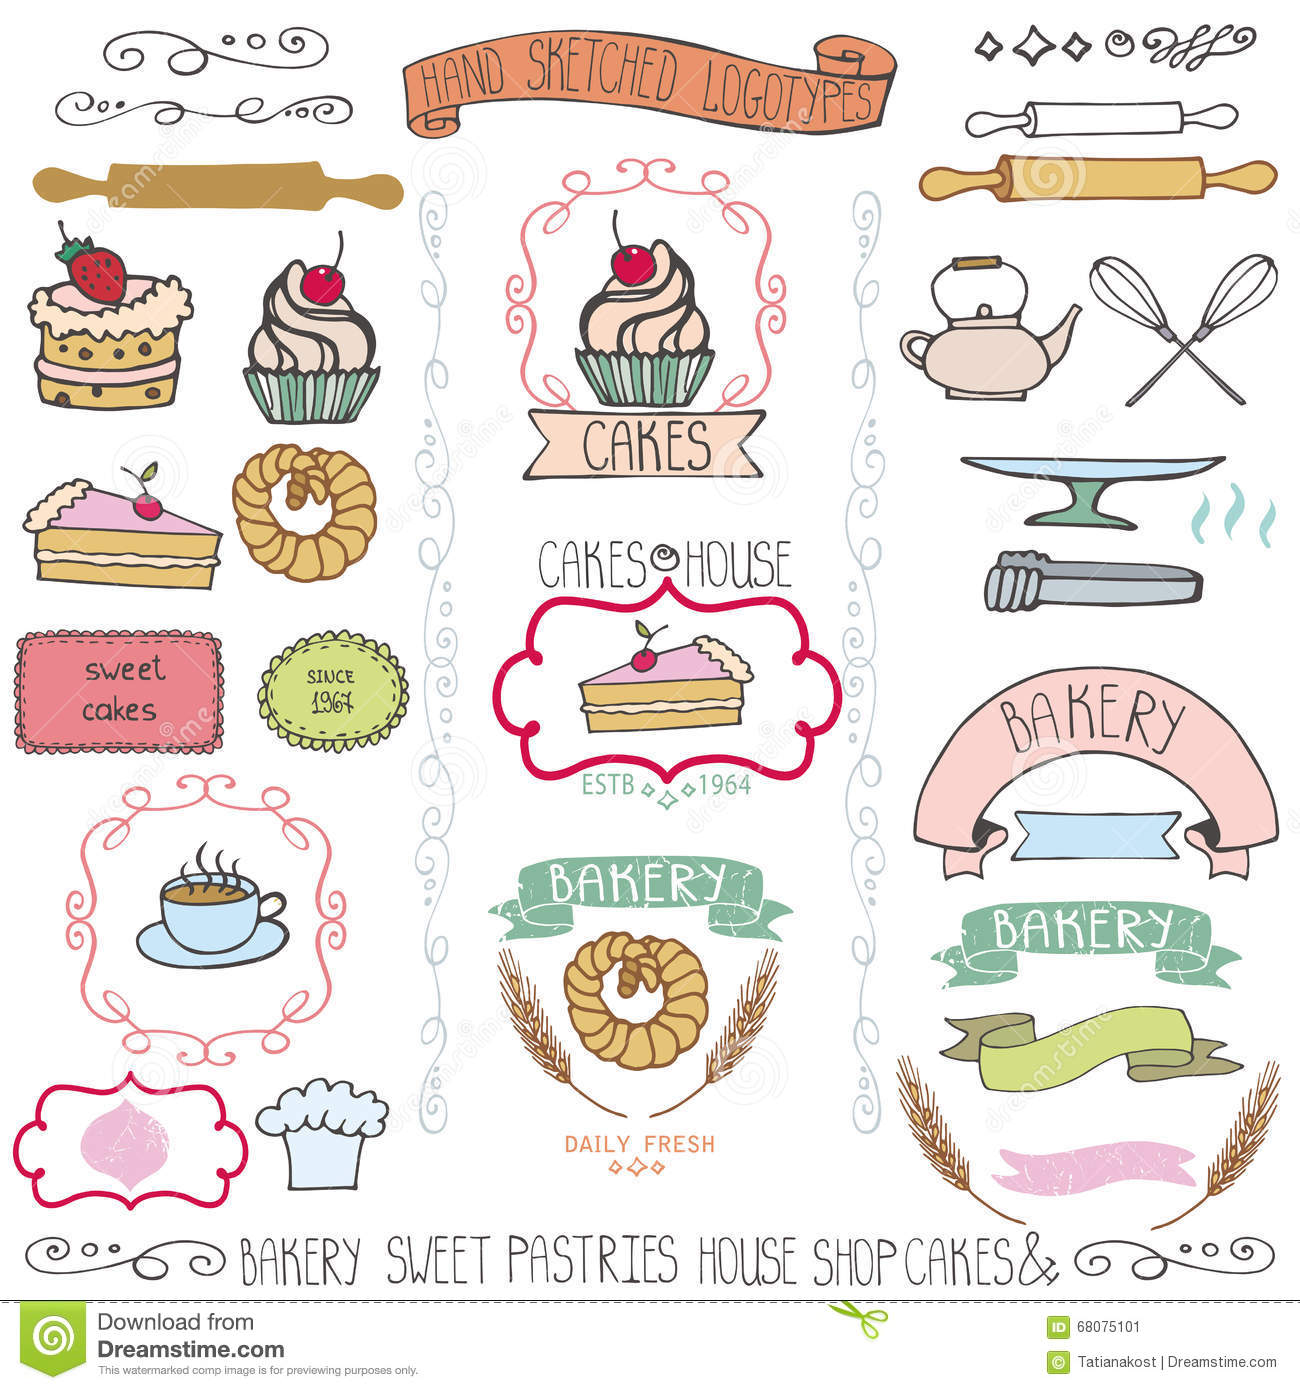 Bakery cakes labels elementsodle logo template stock vector bakery cakes labels elementsodle logo template royalty free vector pronofoot35fo Choice Image